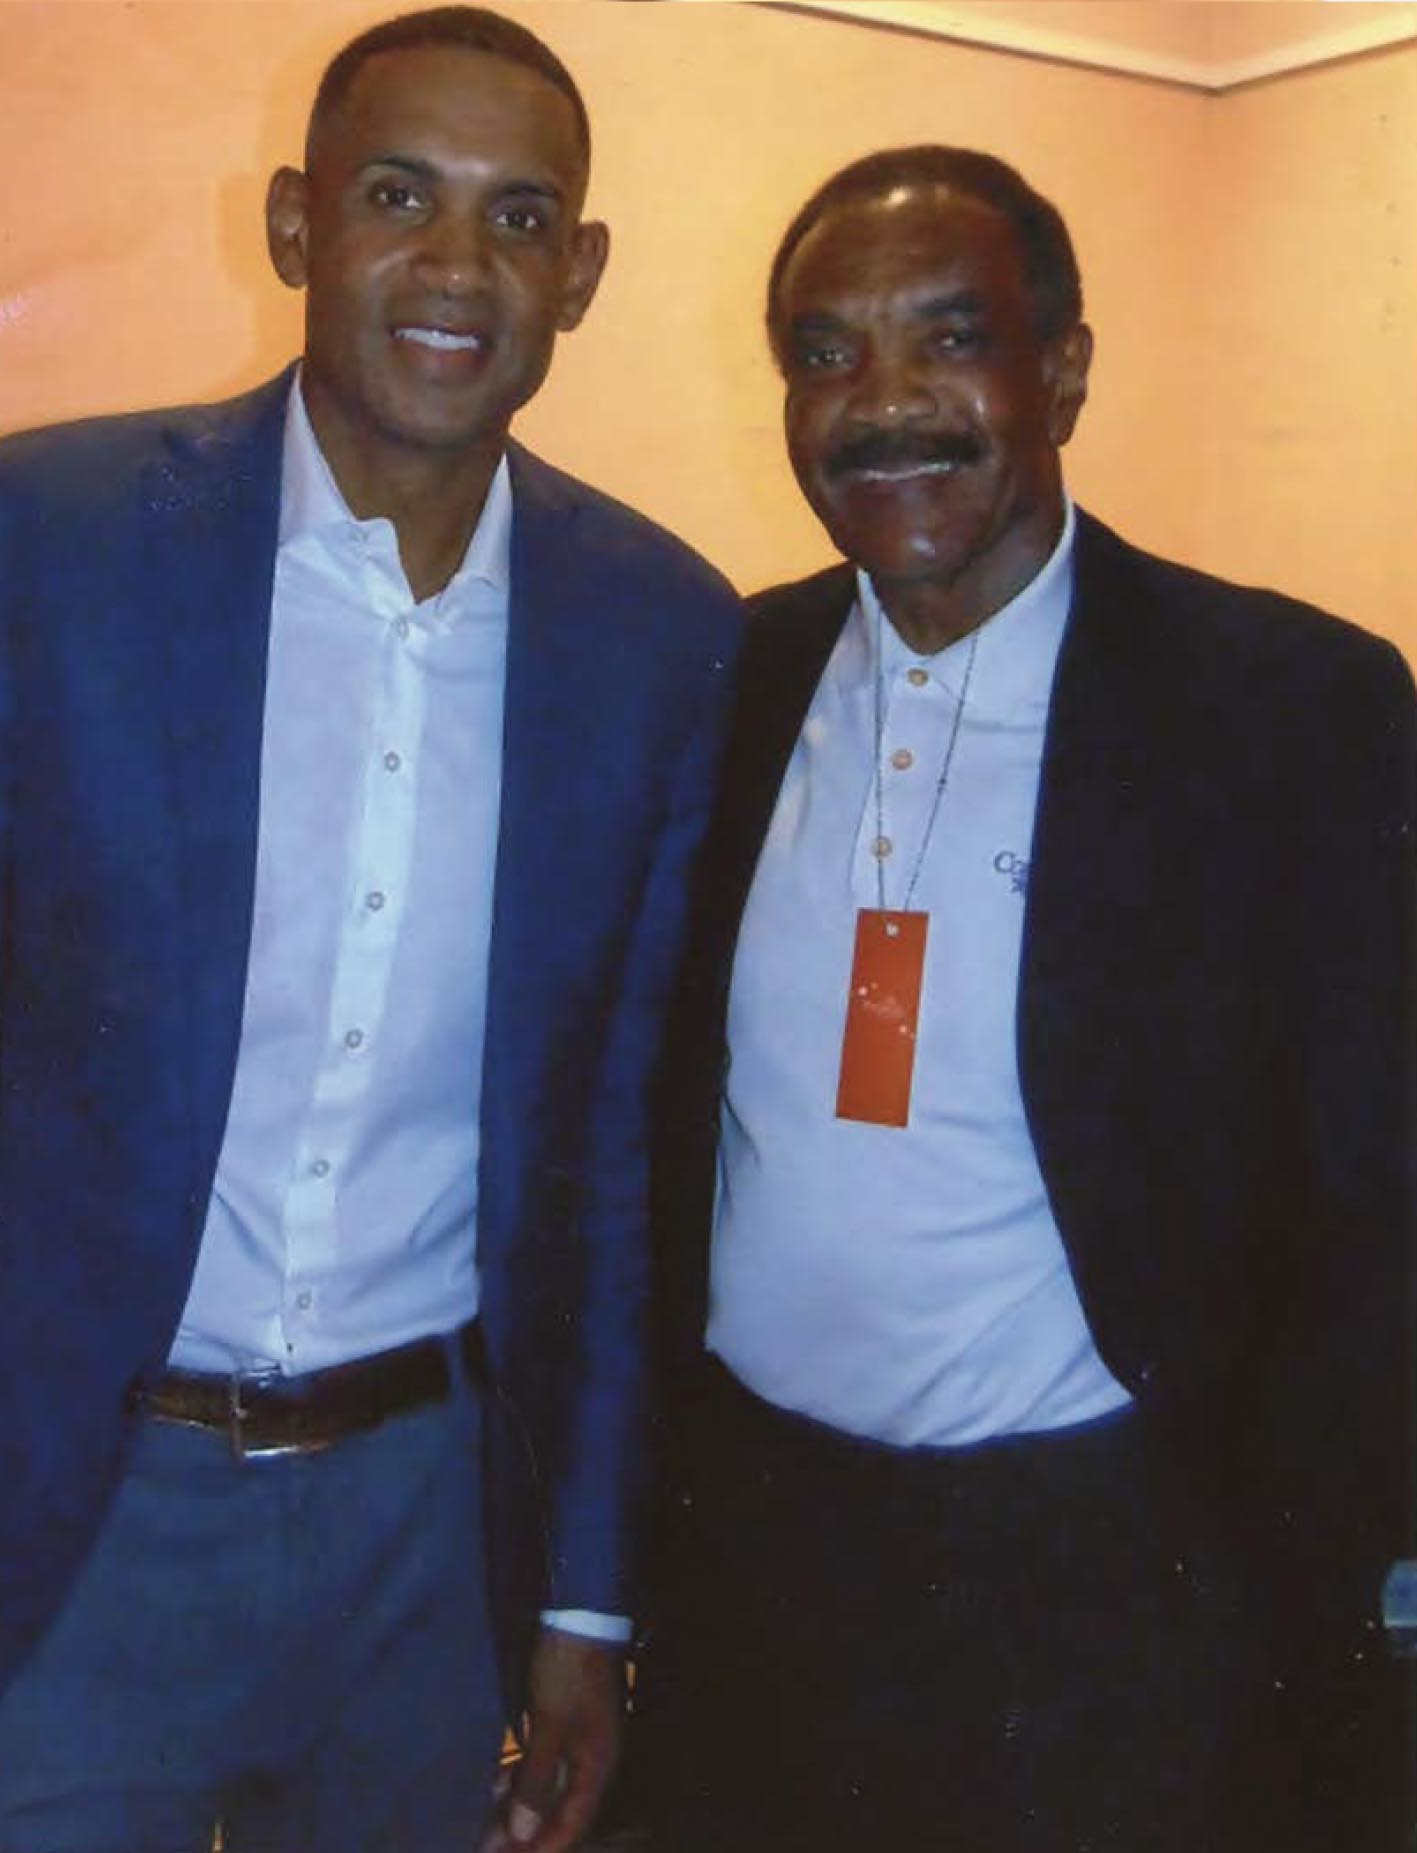 Hall of Fame Father/Son duo Calvin Hill (R) and Grant Hill (L). (Earl Health Photo)